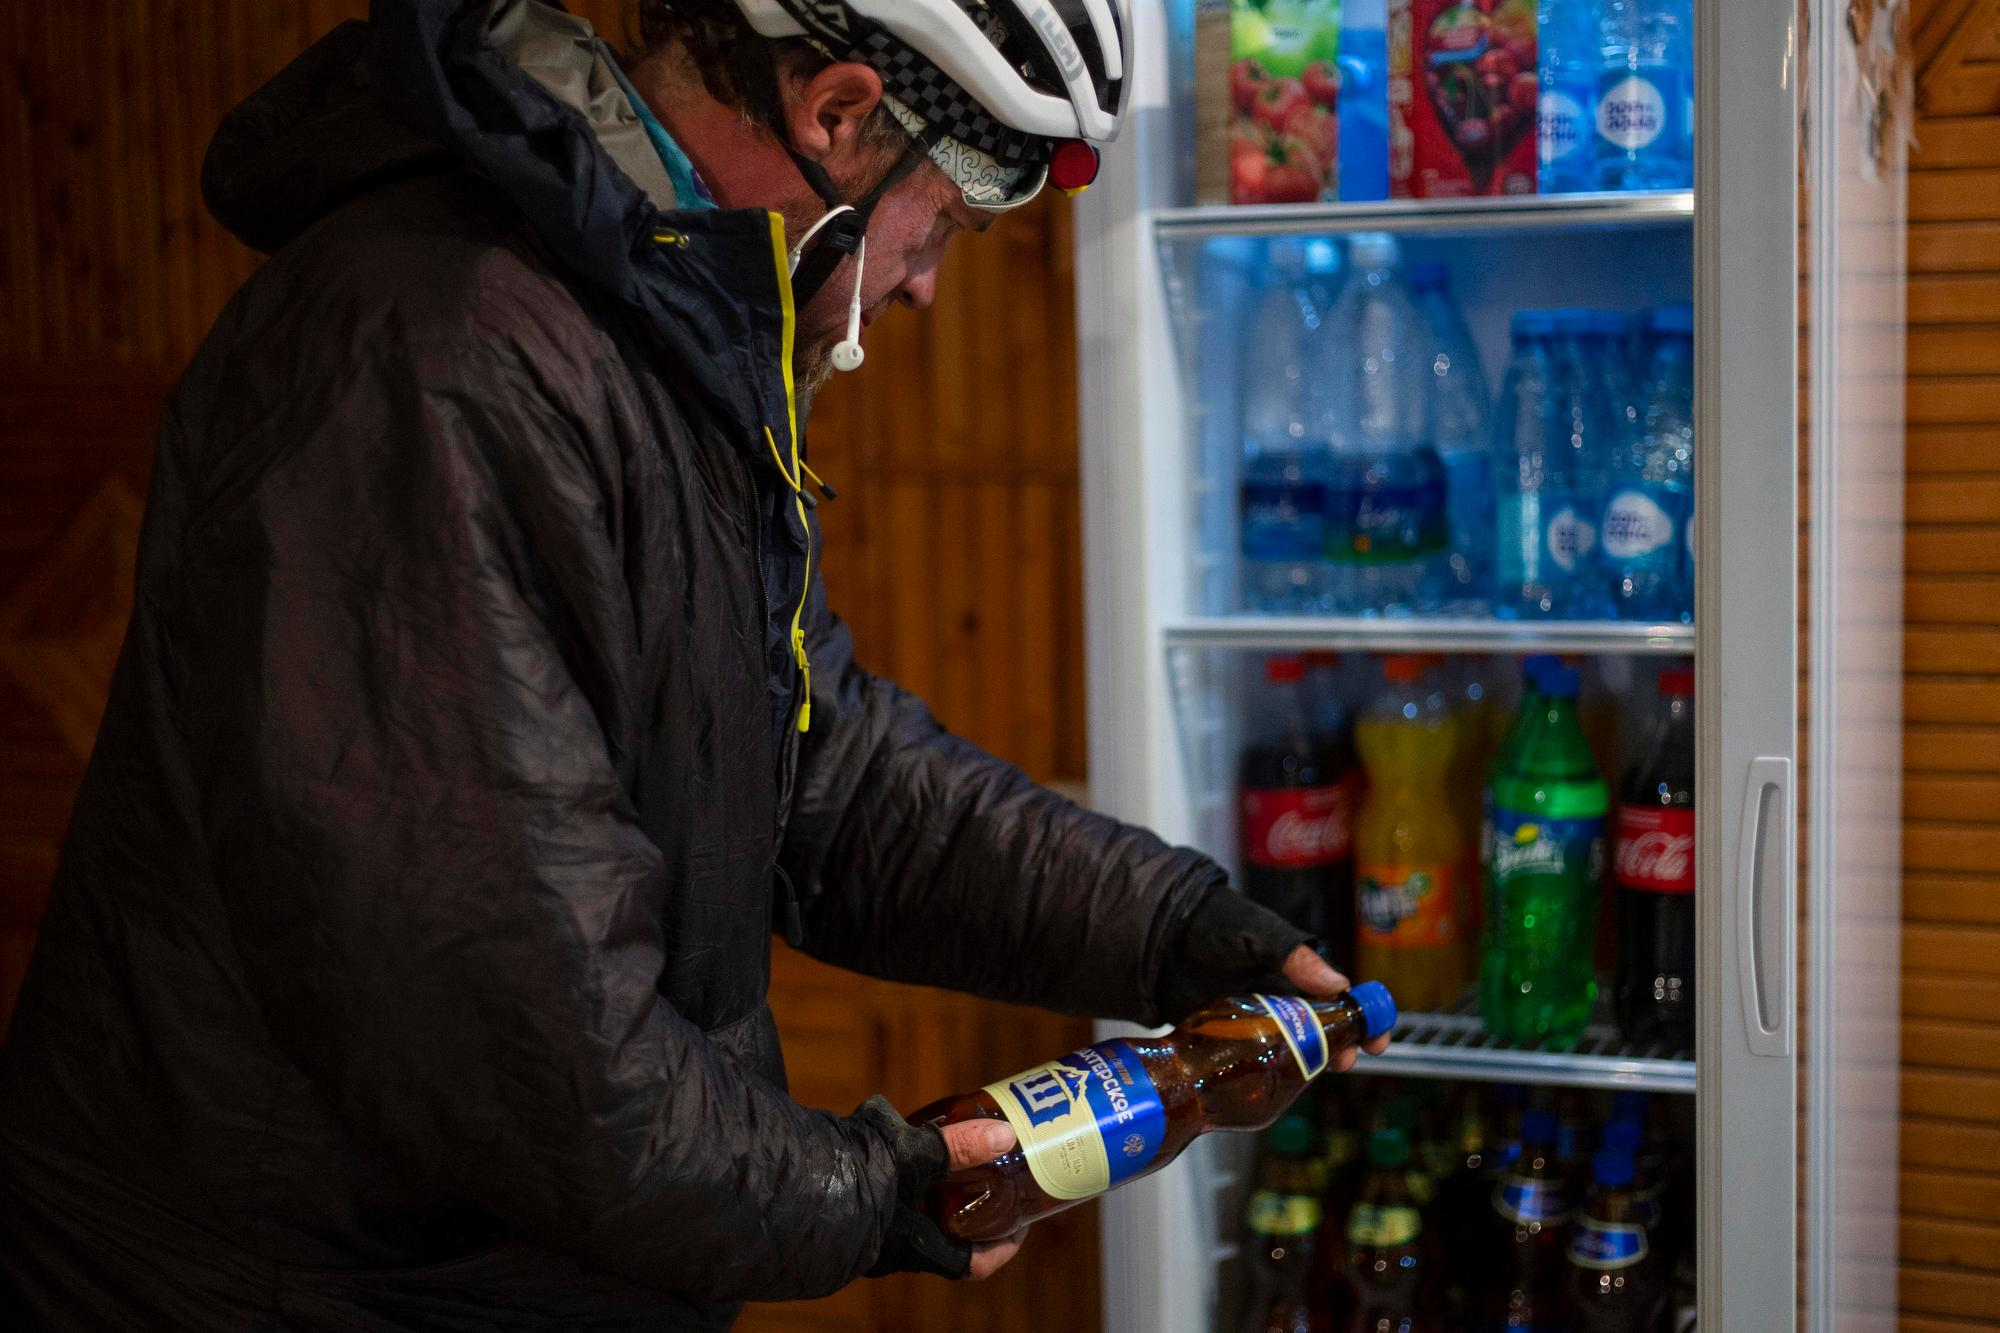 Jay Petervary selects a beer for dinner at checkpoint three. (Rugile Kaladyte)